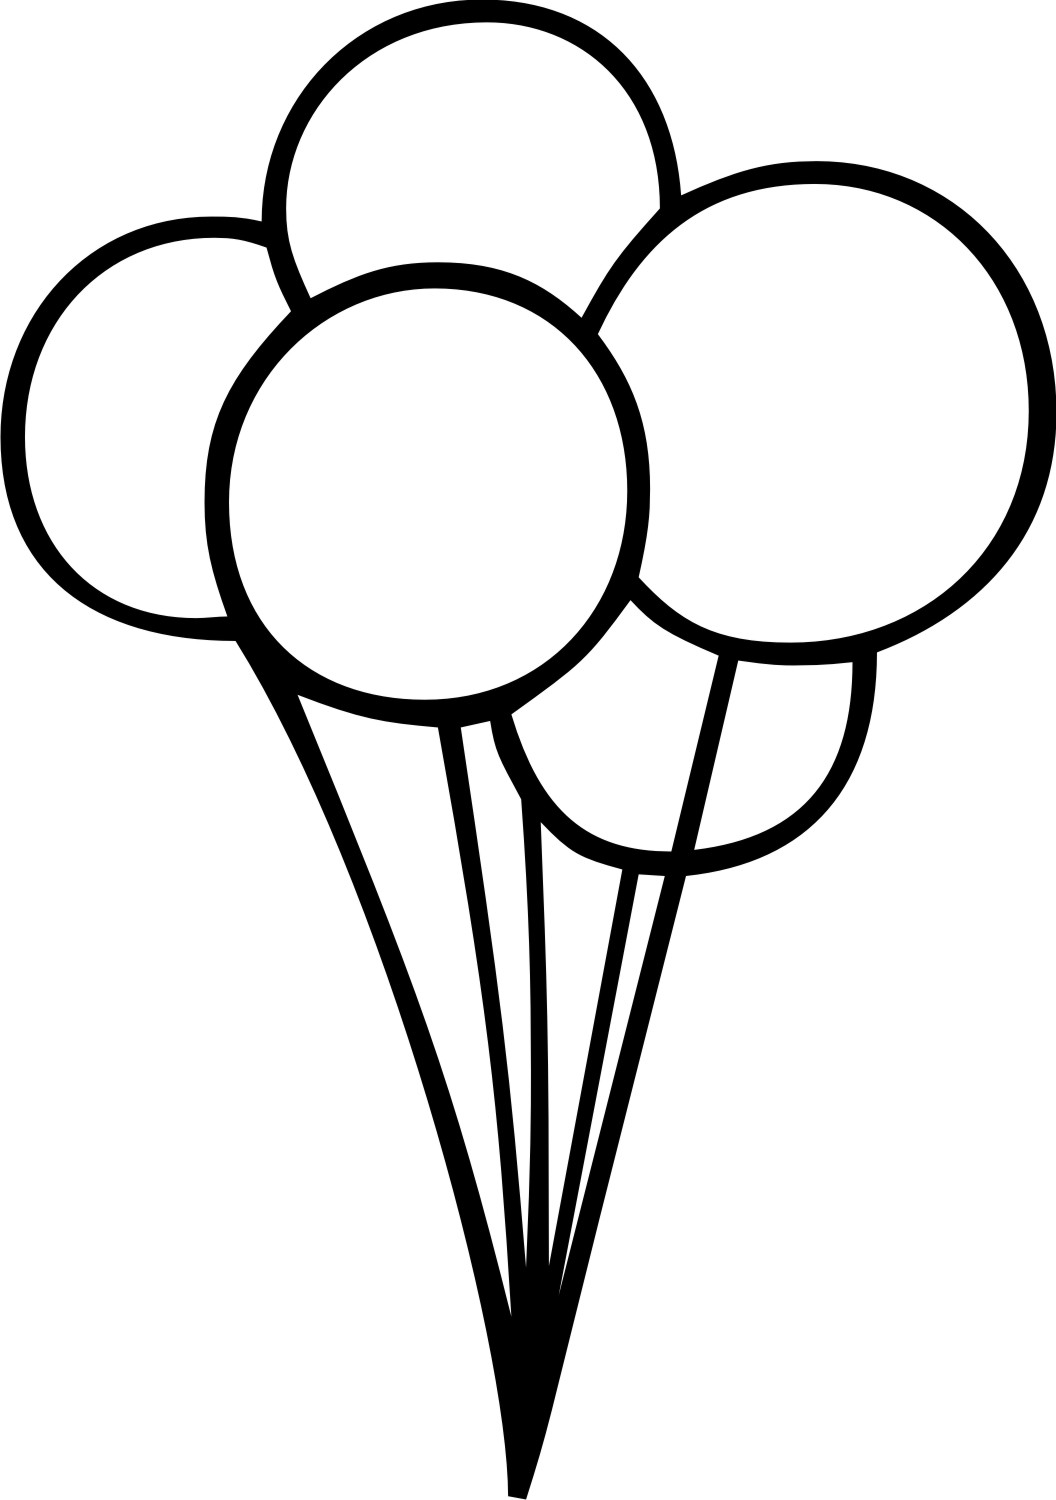 Balloon drawing clipart jpg black and white download Free Balloon Outline, Download Free Clip Art, Free Clip Art on ... jpg black and white download